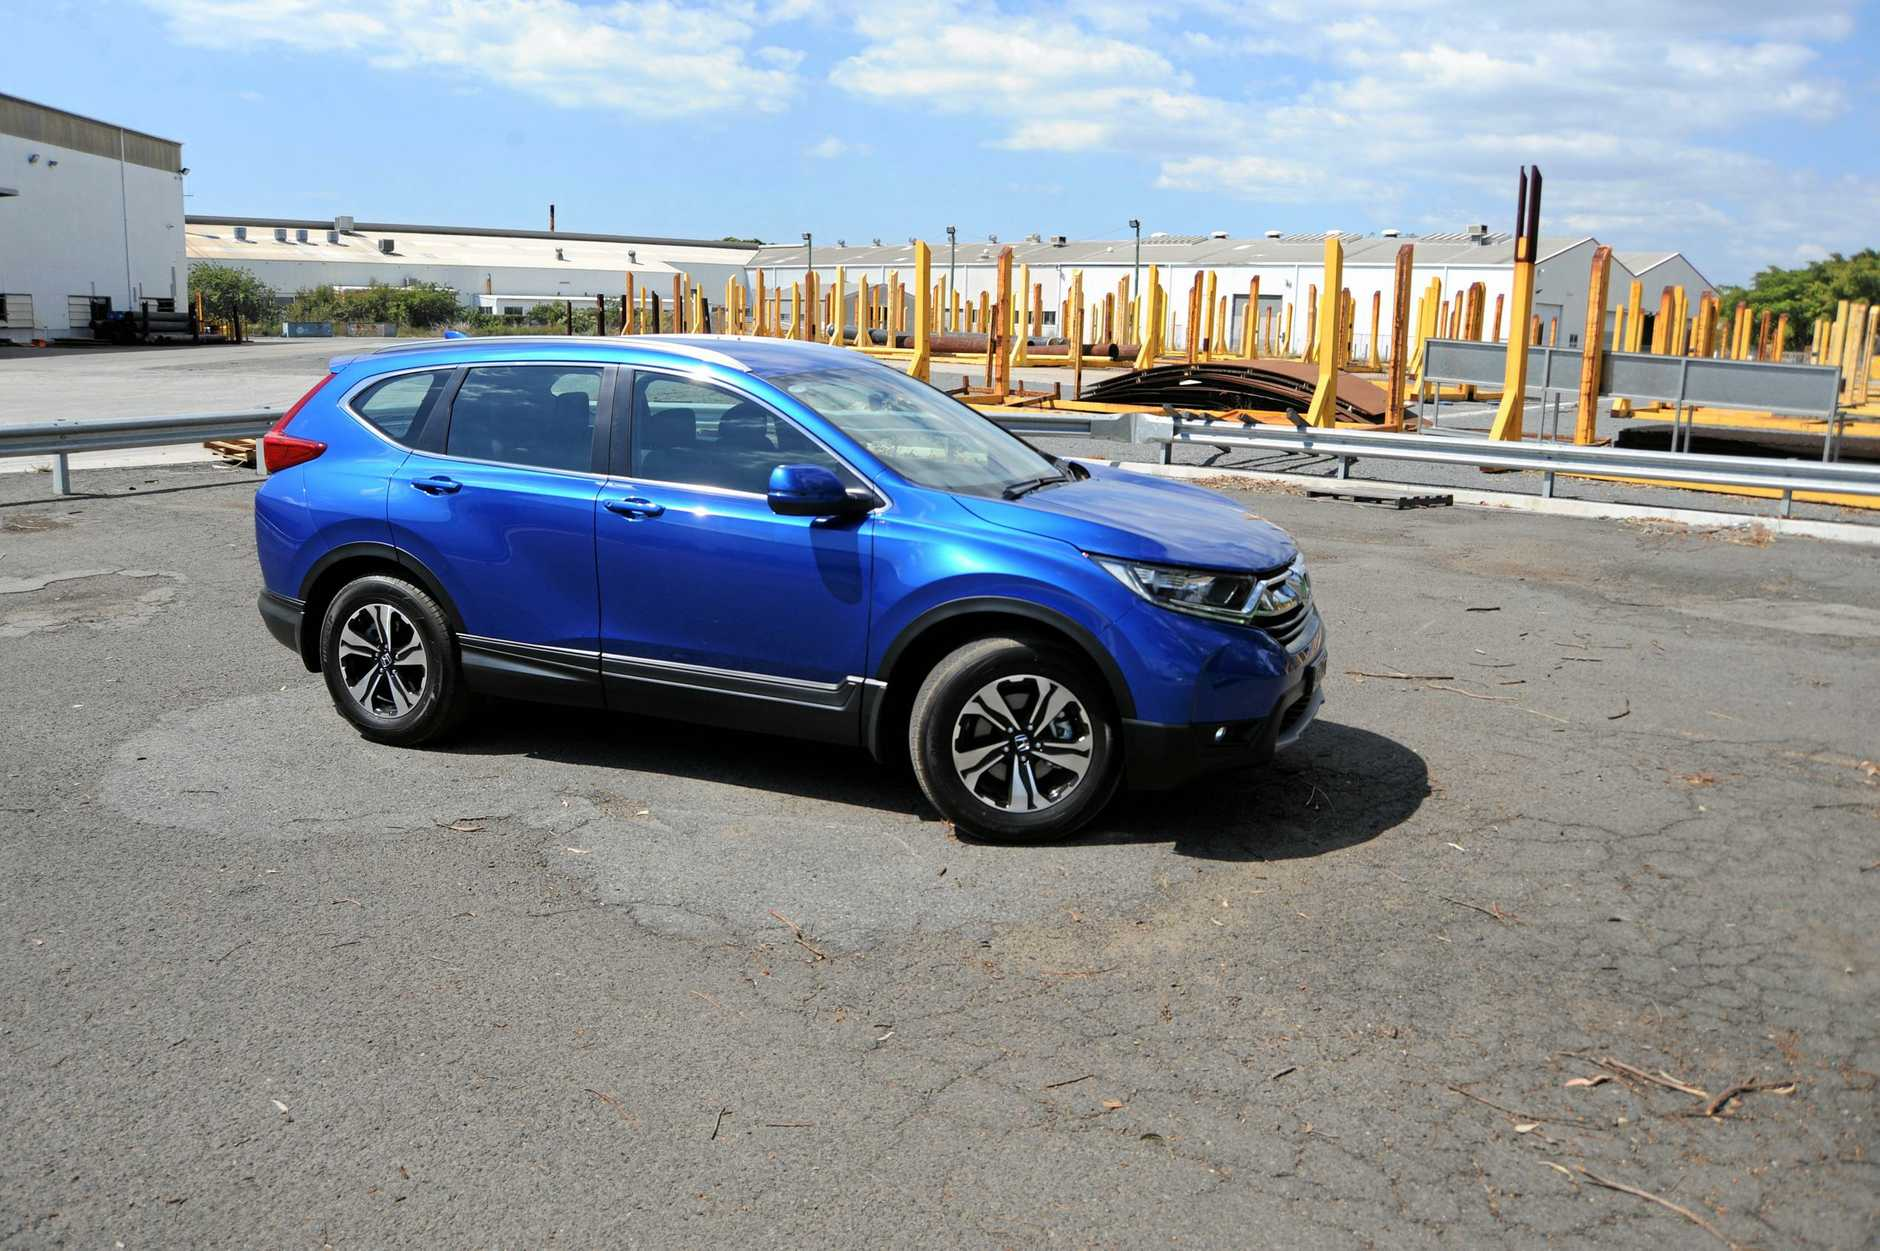 ROAD TEST: Honda CR-V VTi has extra oomph and enthusiasm